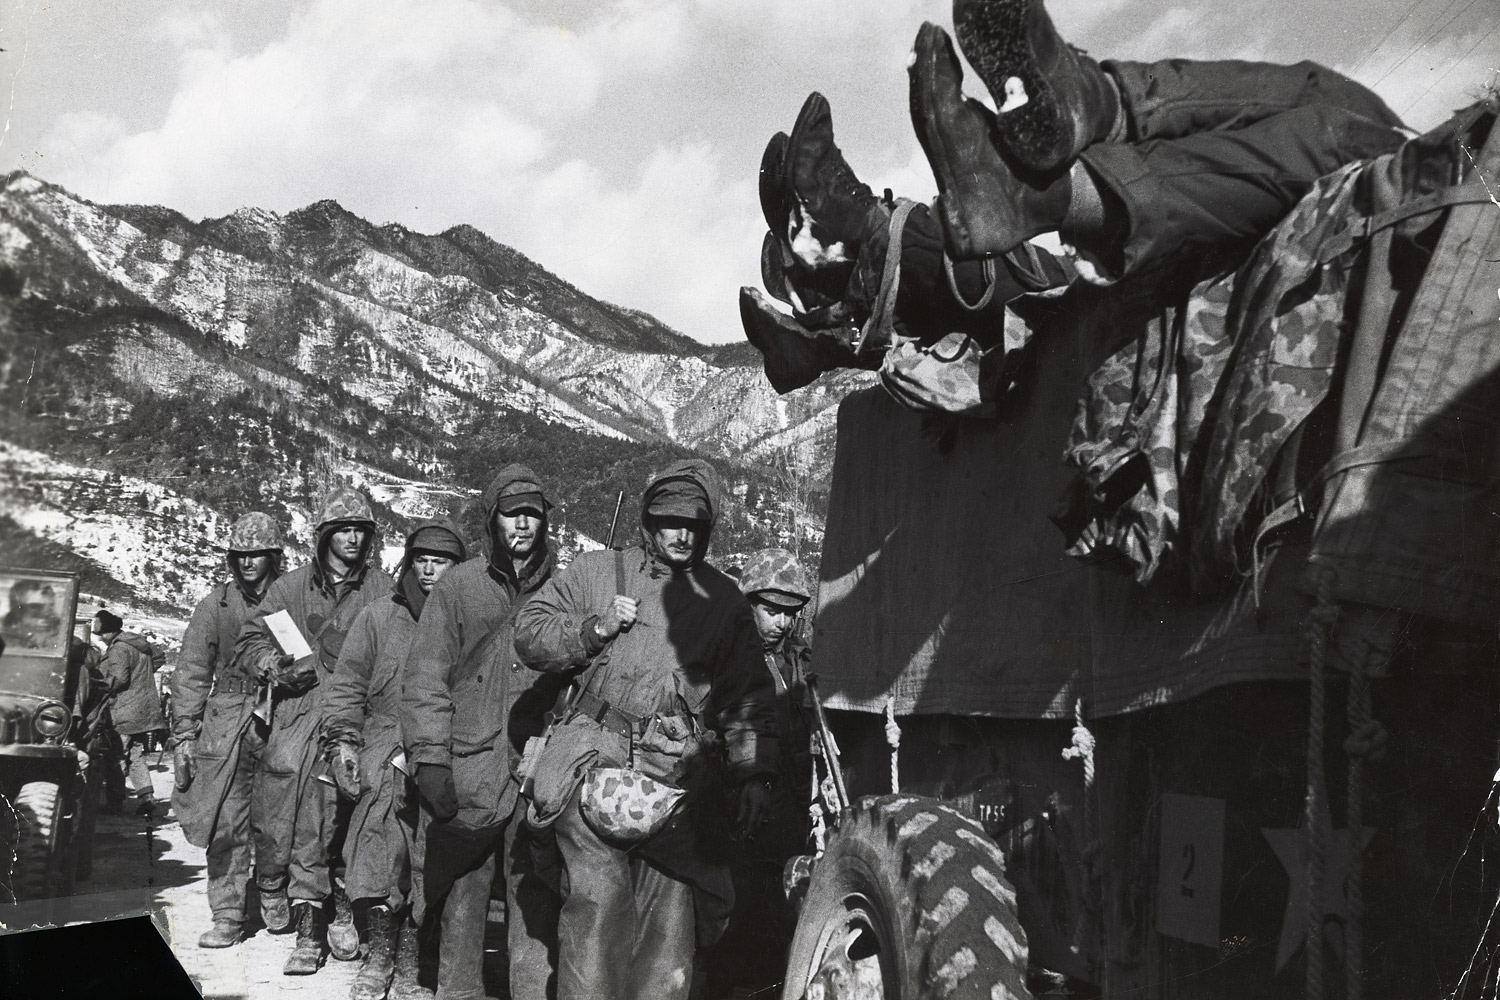 Dead U.S. marines loaded in a truck, leading a column of survivors during their grim retreat from the Changjin Reservoir after being cut off by the Red Chinese in December of 1950.